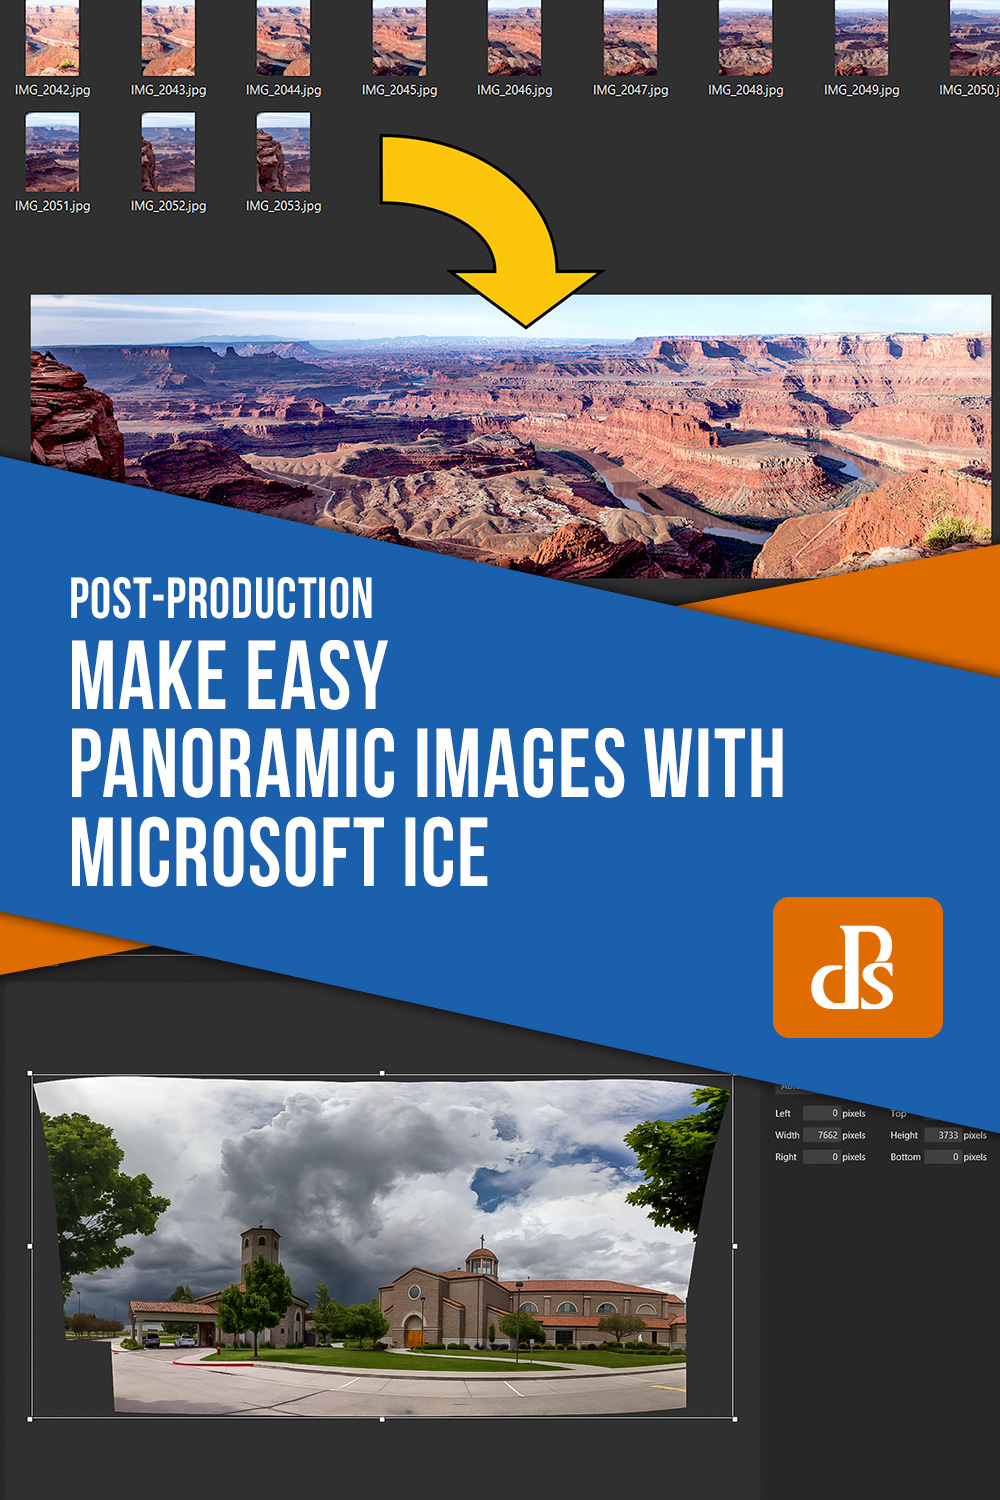 panoramic images with Microsoft ICE